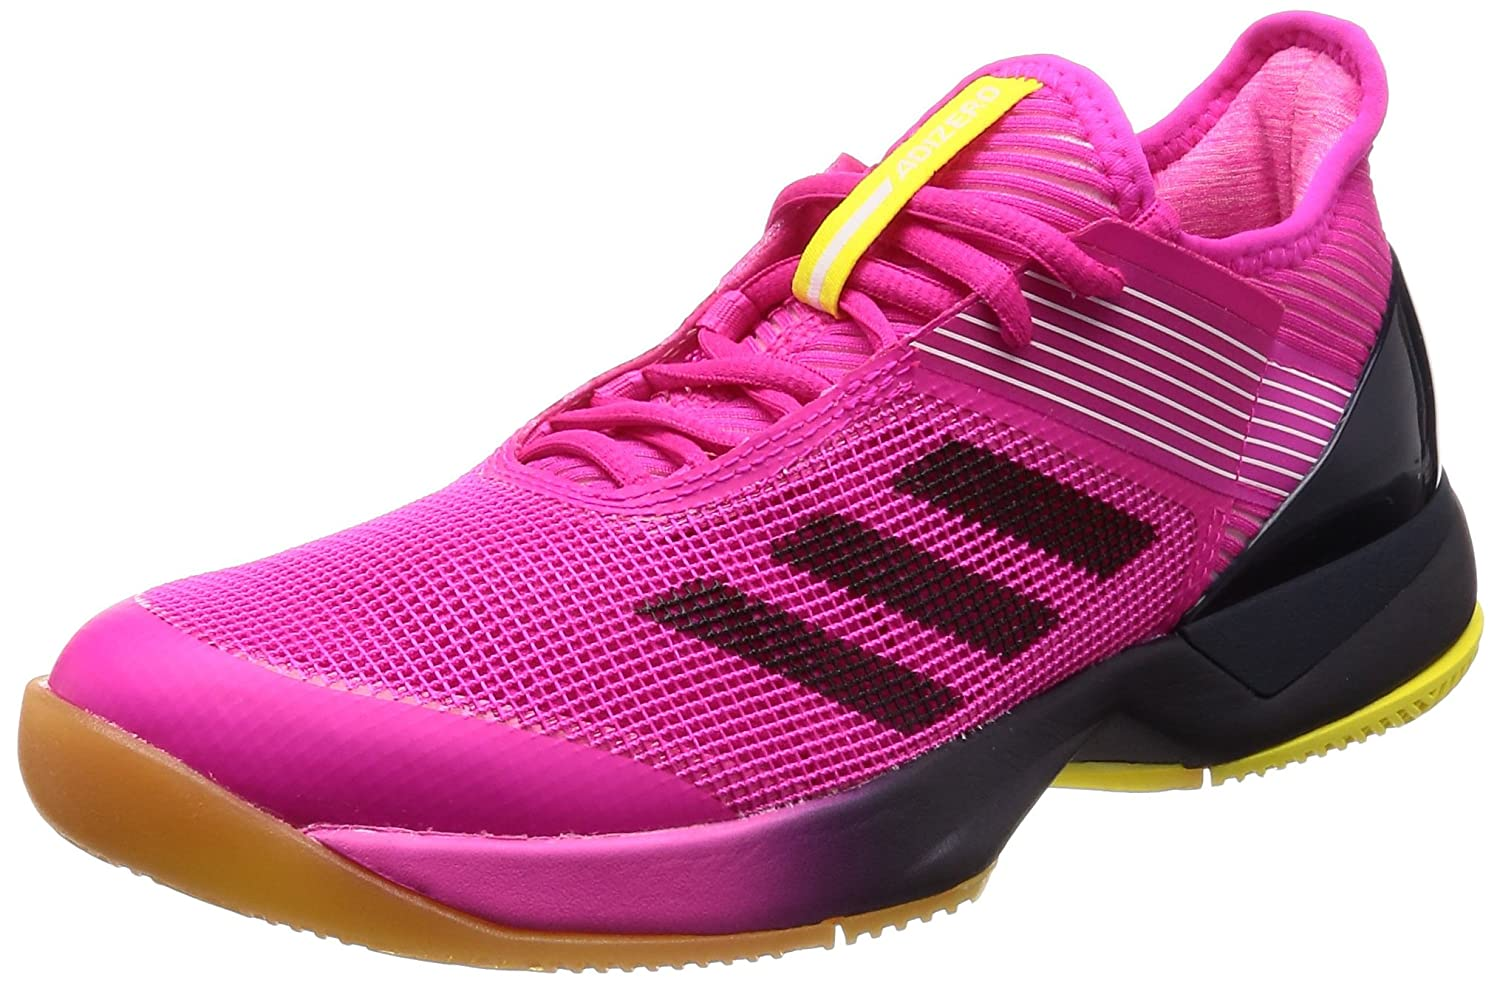 sneakers for cheap 12e97 2c988 adidas Adizero Ubersonic 3.0, Scarpe da Tennis Donna Amazon.it Scarpe e  borse